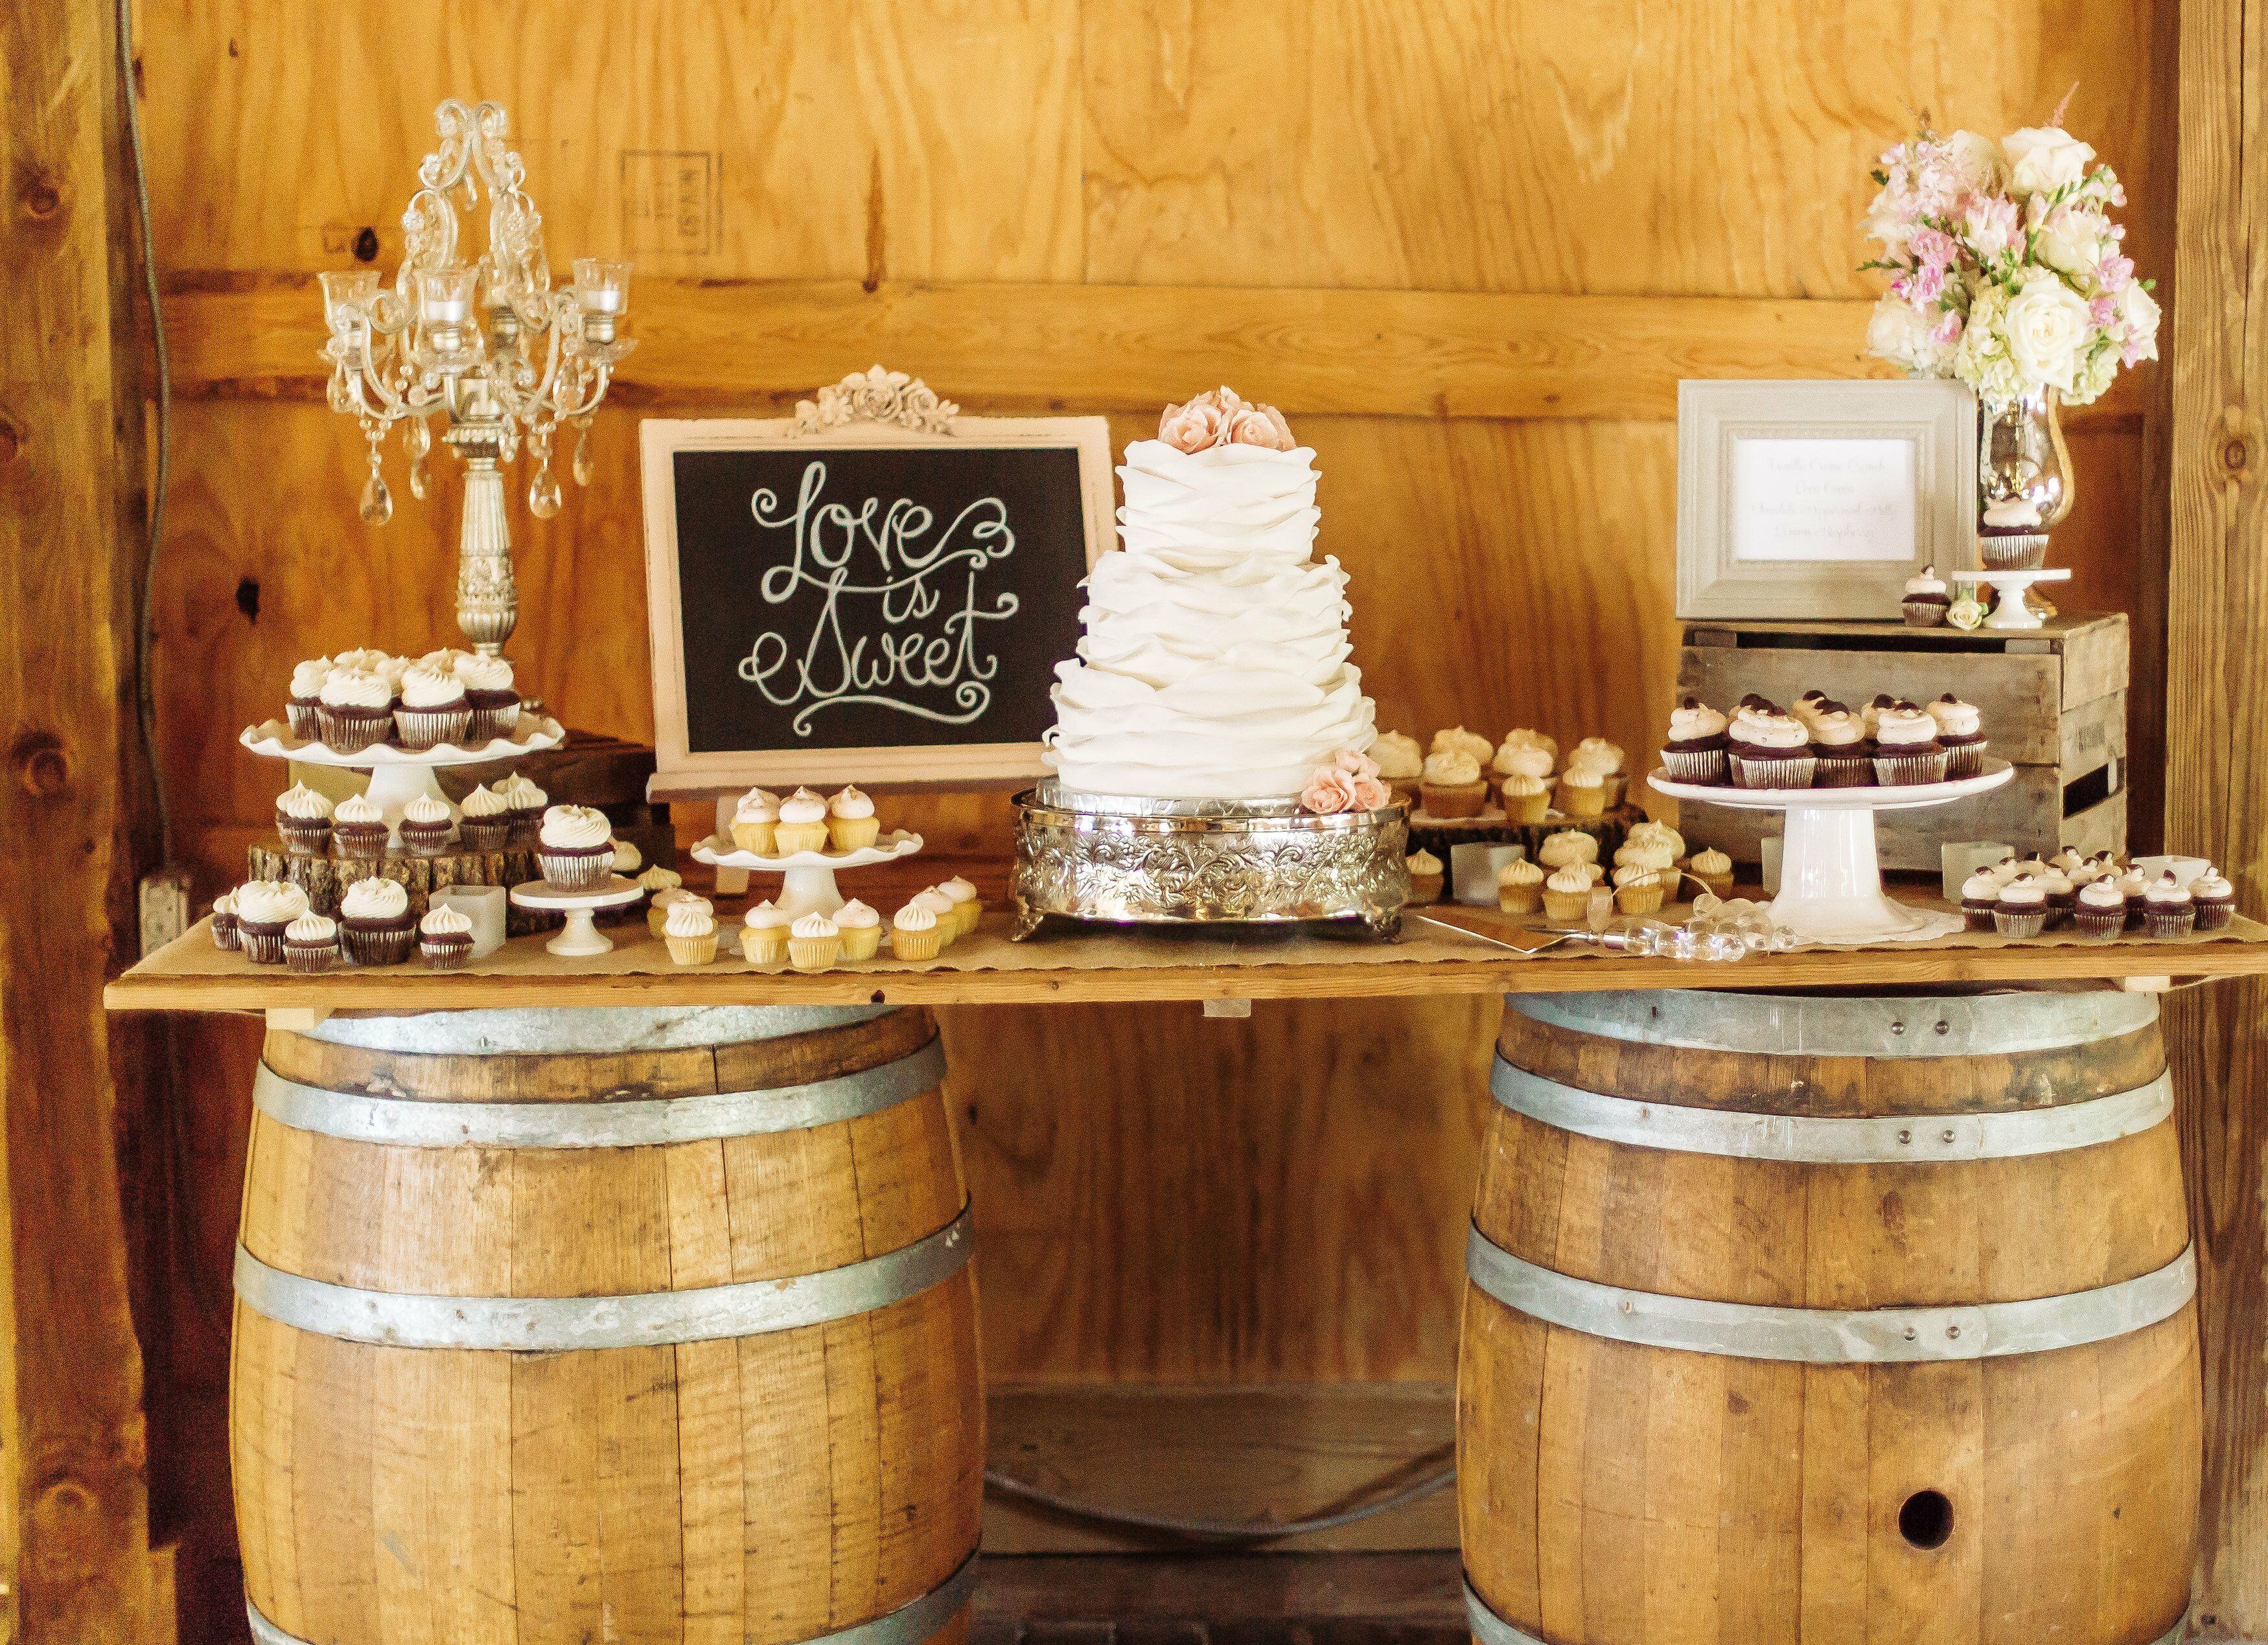 pictures of rustic wedding cake tables rustic dessert table with cupcakes and wedding cake 18430